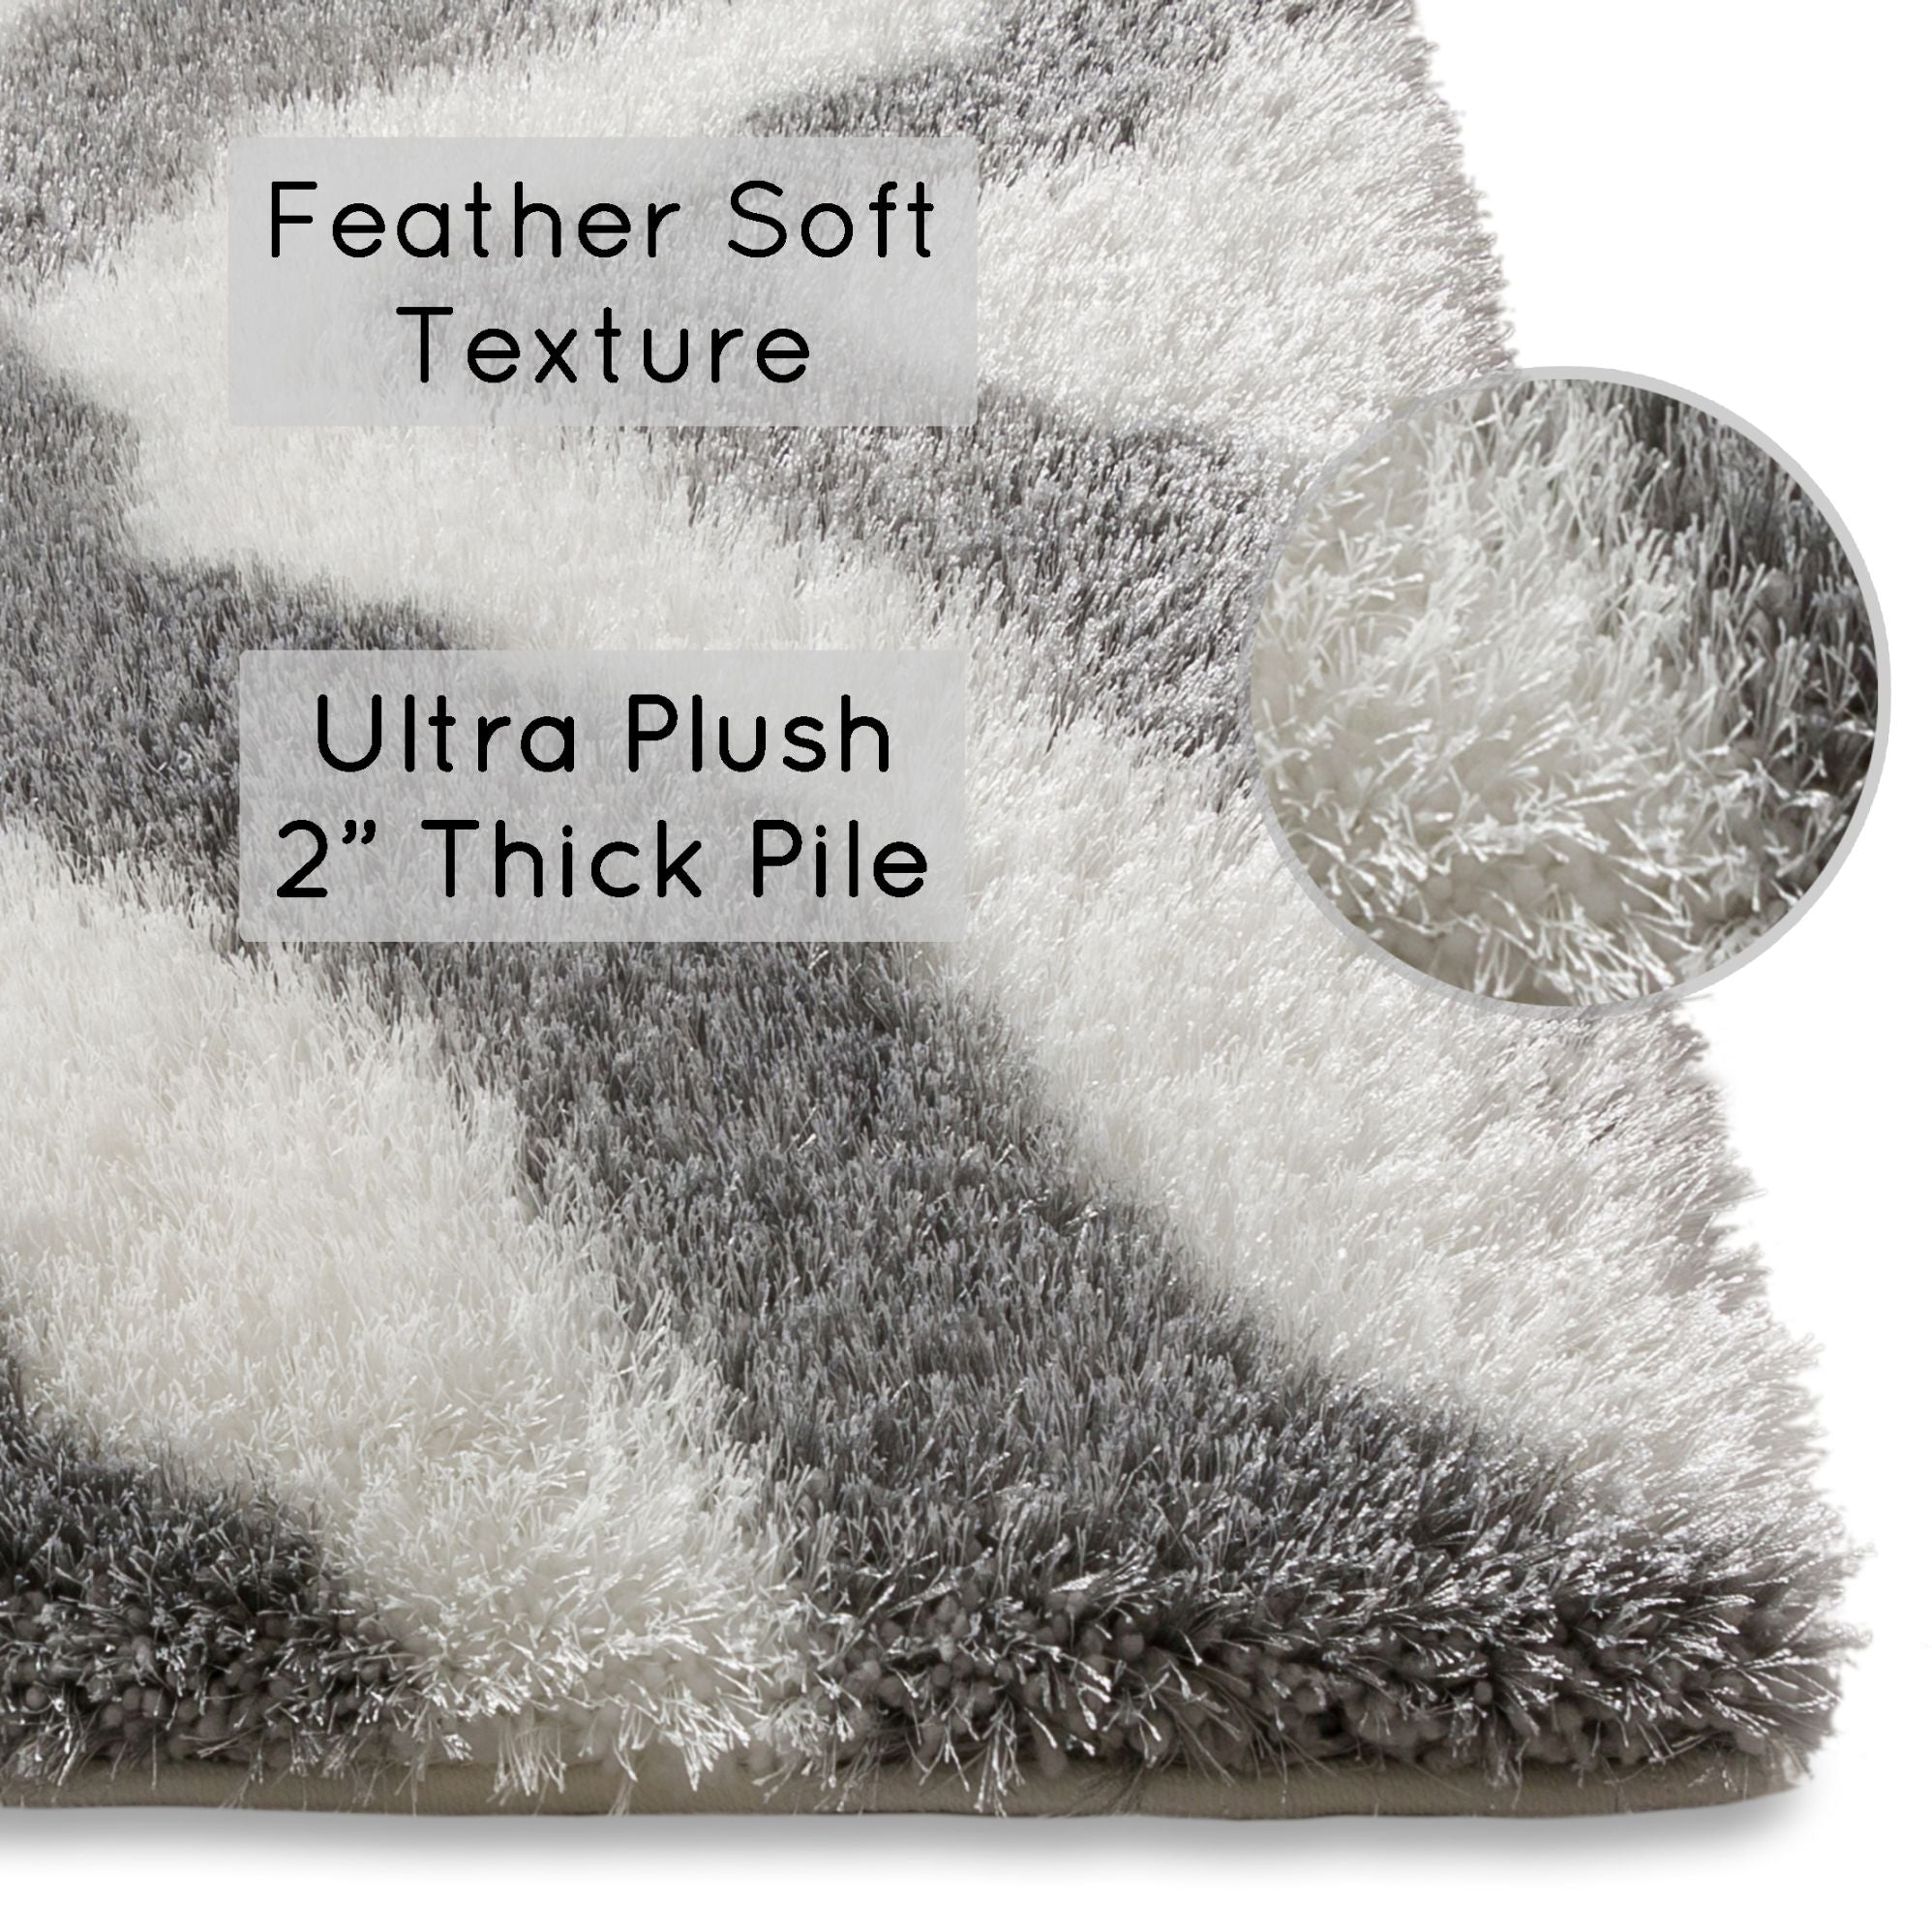 Picture of: Luster Lattice Shag Grey White Solid Plain Modern Ultra Thick Soft Plush Shimmer 3×5 3 3 X 5 Area Rug Contemporary Retro Polyester Textured Length 2 Pile Yarn Easy Clean Stain